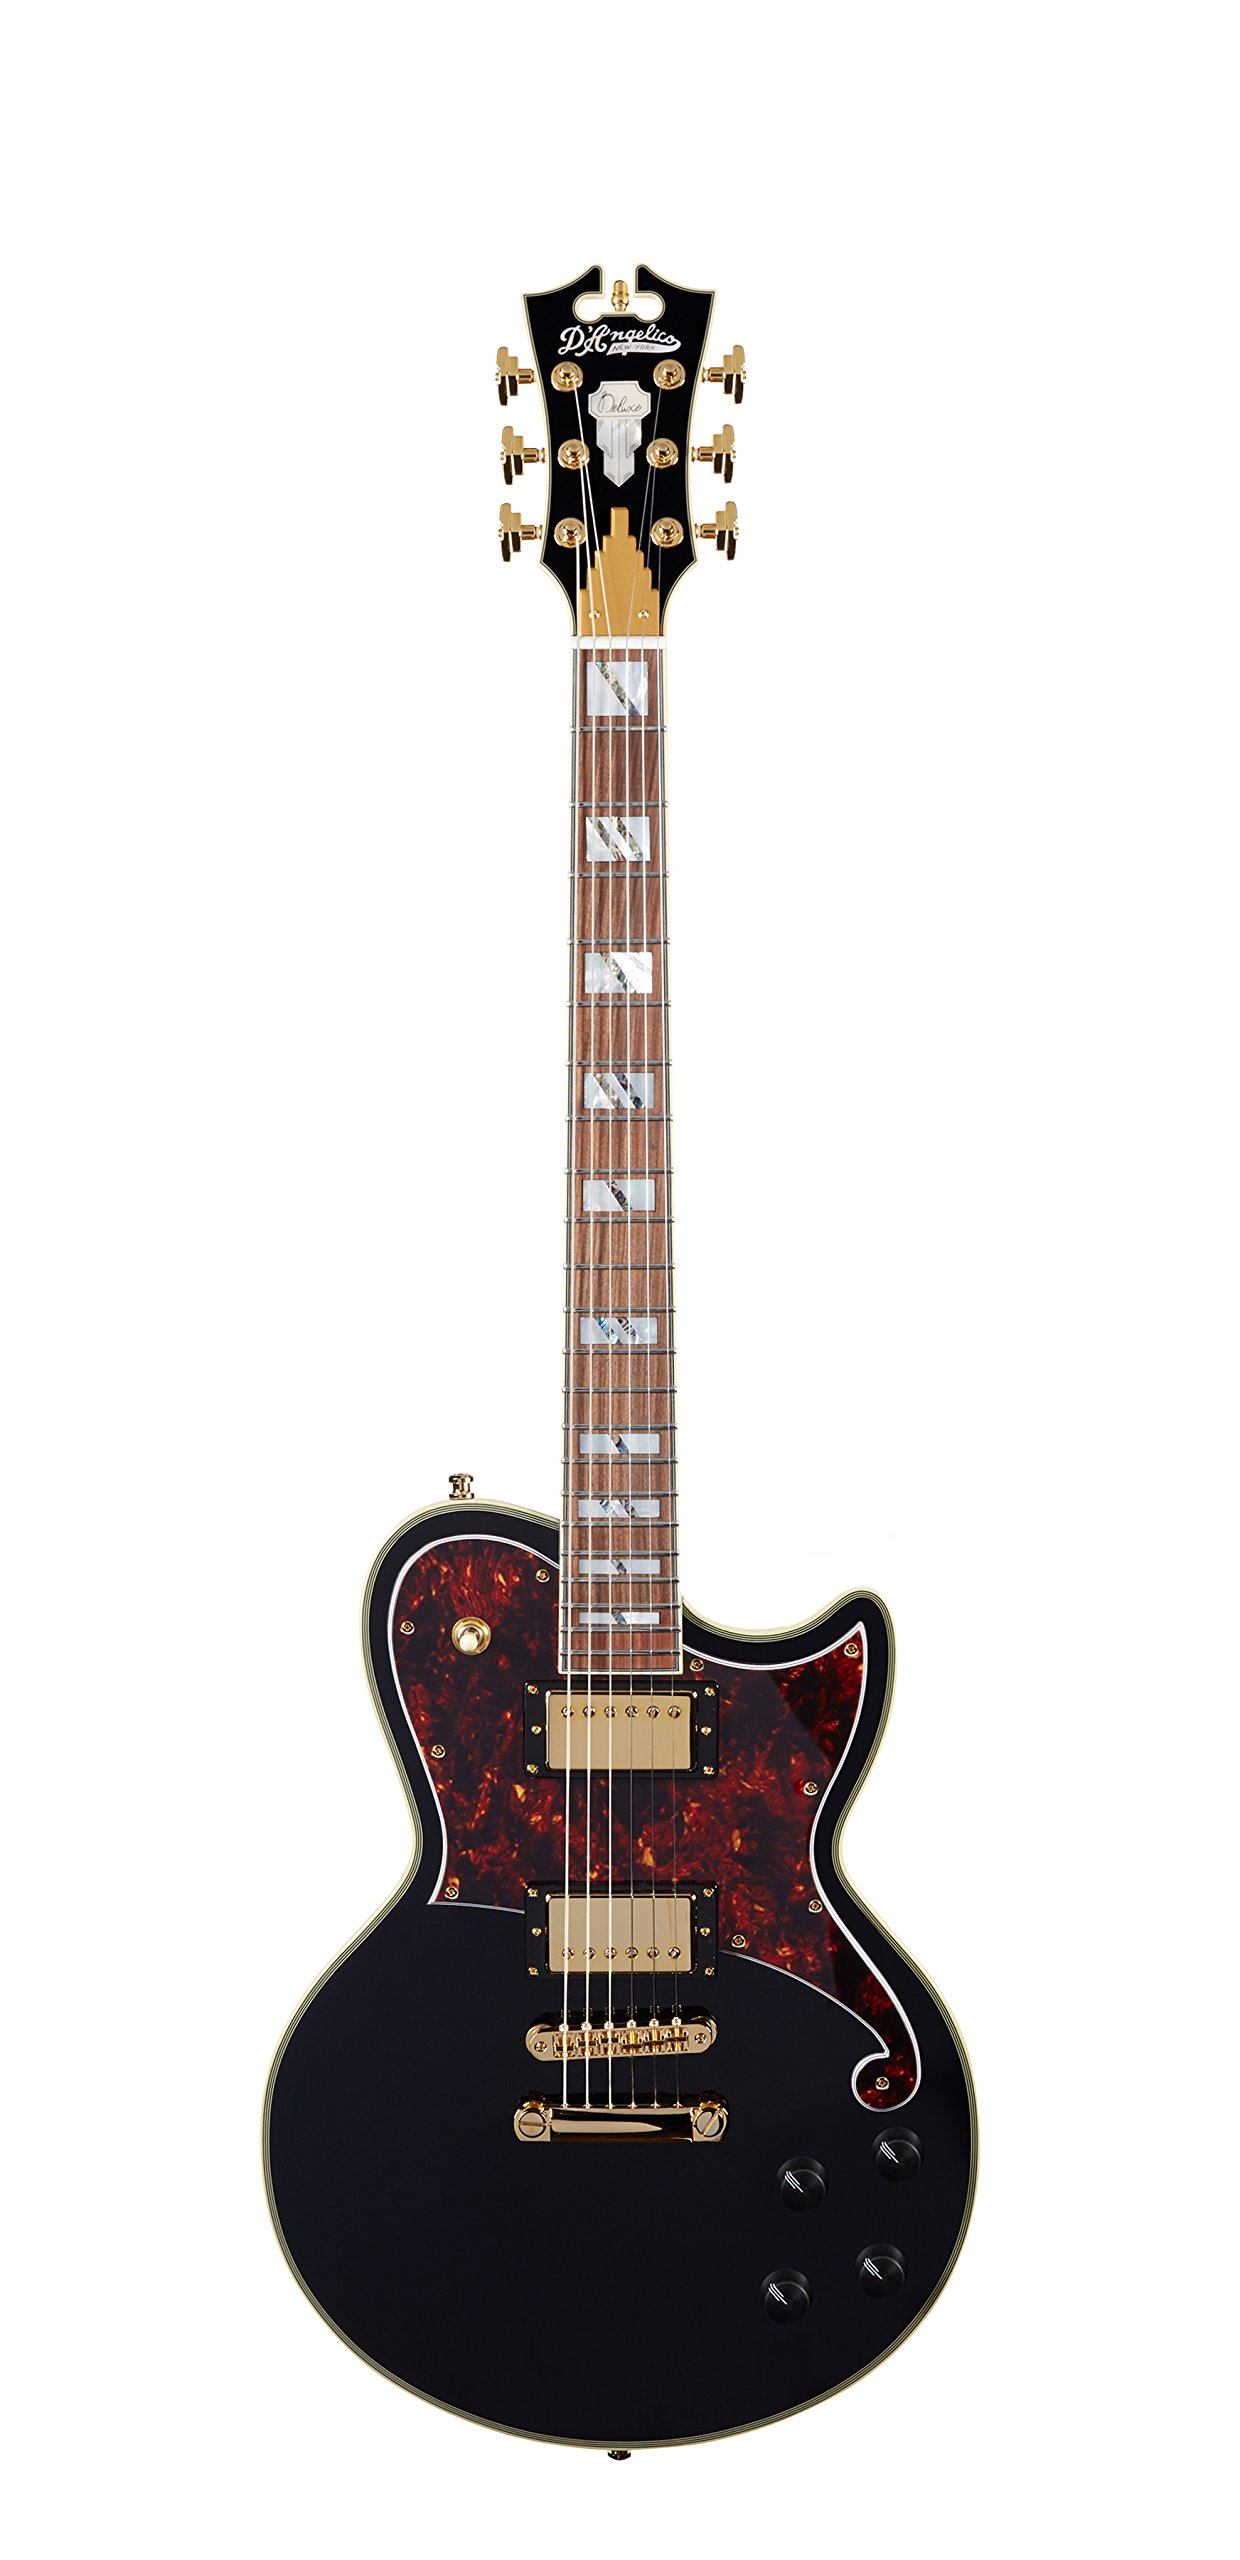 Cheap D Angelico Deluxe Atlantic Electric Guitar - Black Black Friday & Cyber Monday 2019